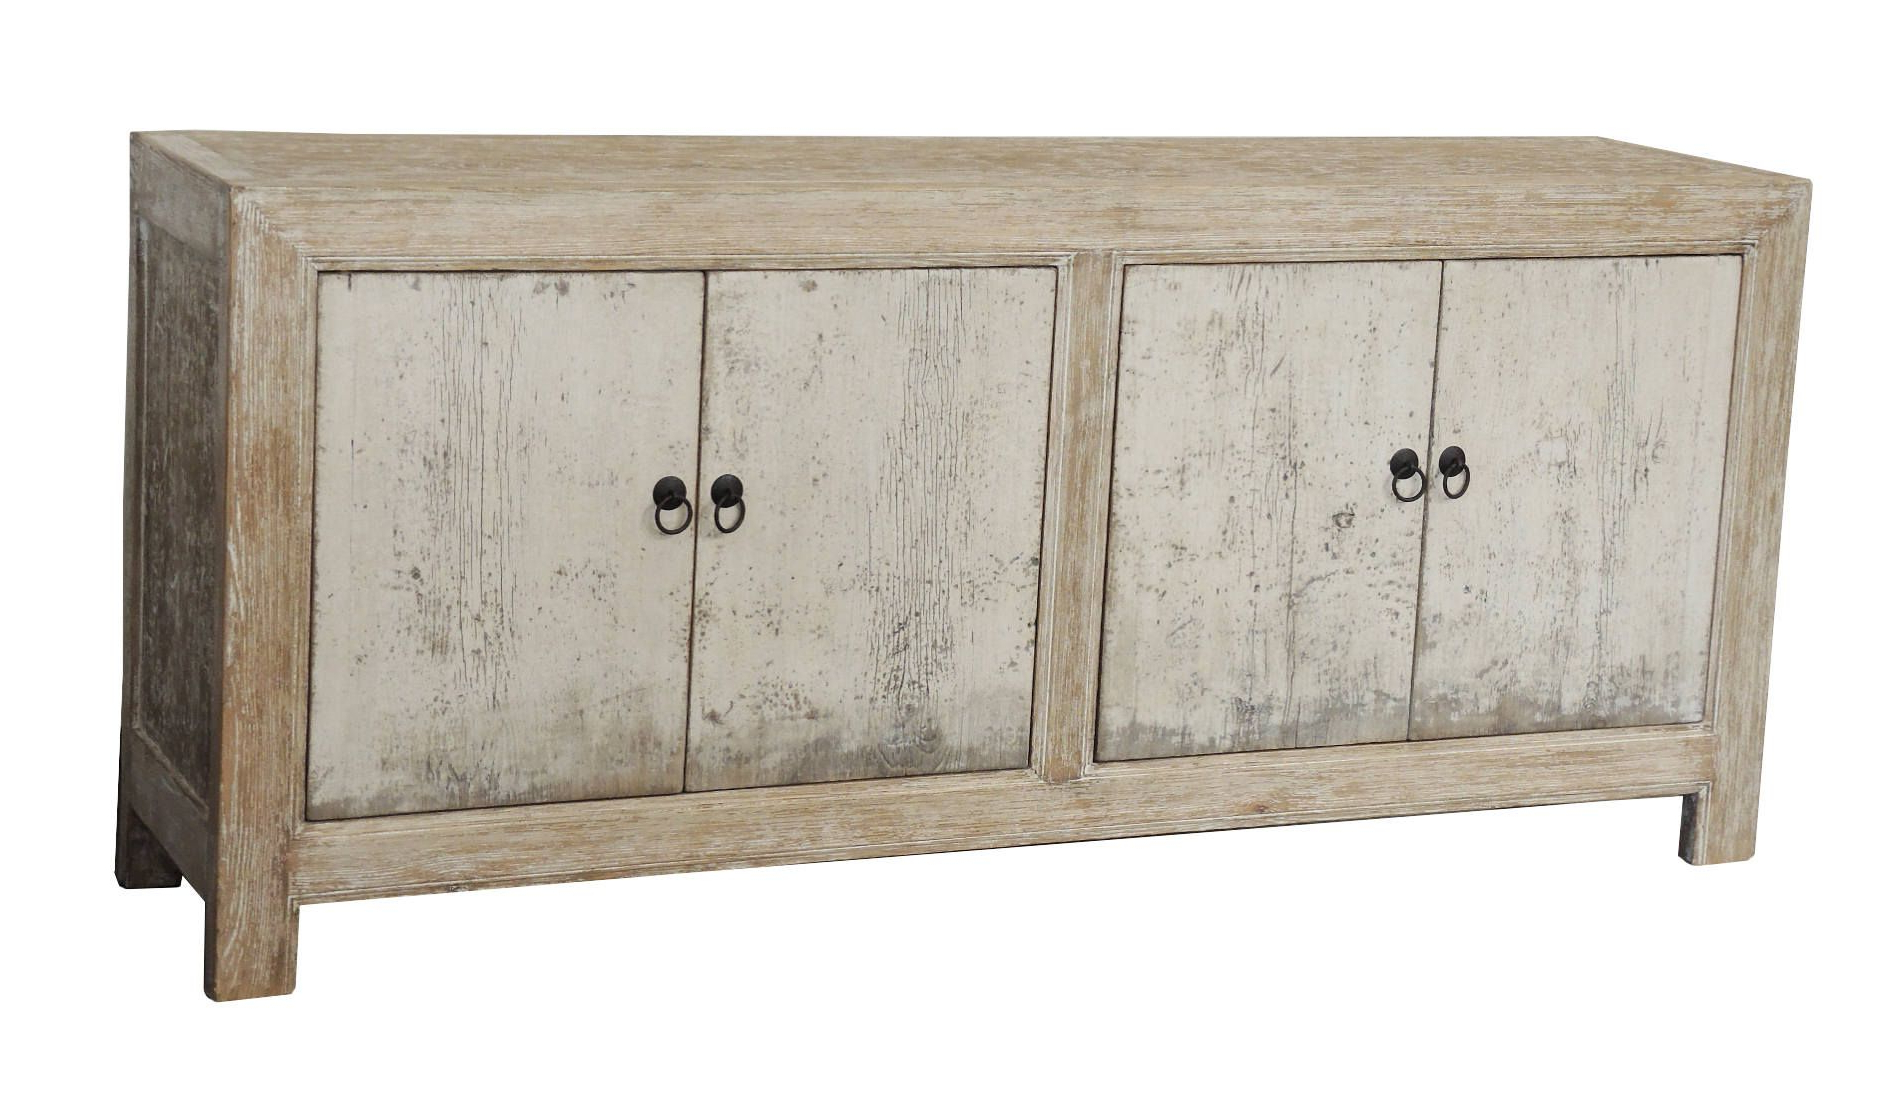 White Wash Distressed 4 Door Sideboard From Terra Nova Designs With Regard To Well Known White Wash 4 Door Sideboards (Gallery 6 of 20)